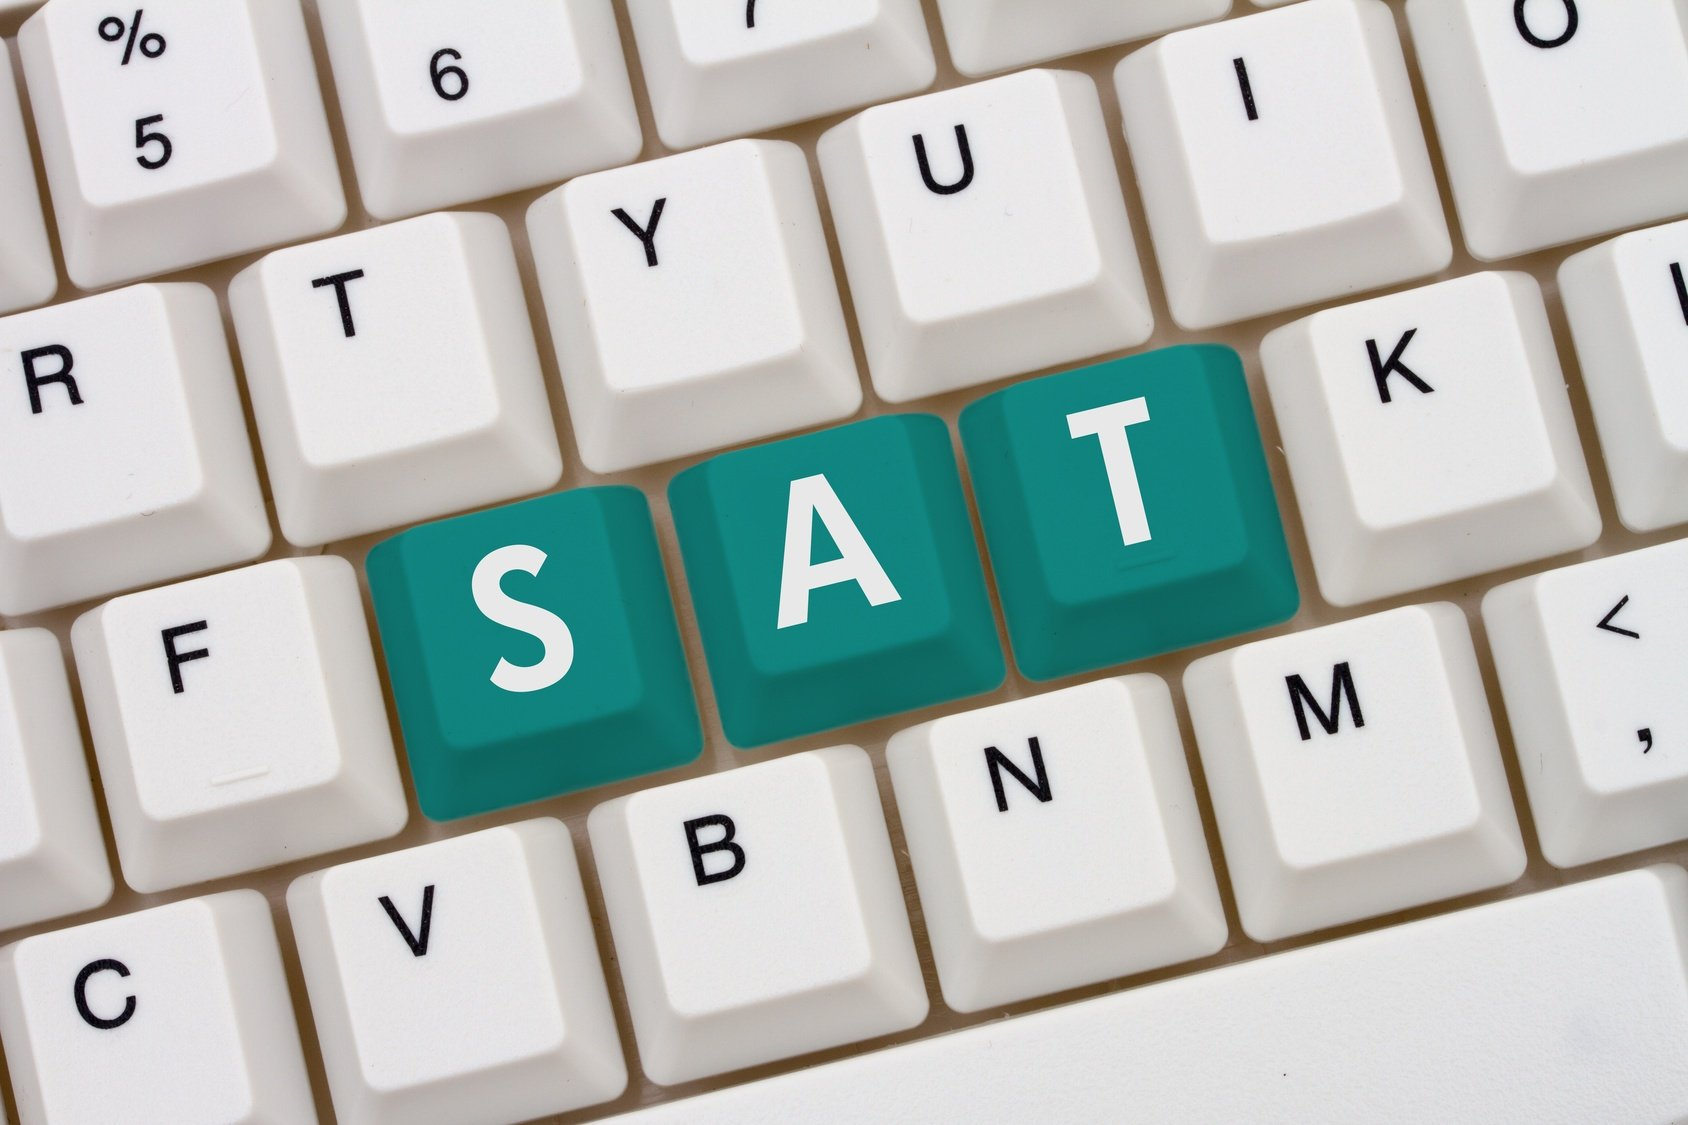 Resources for the August SAT